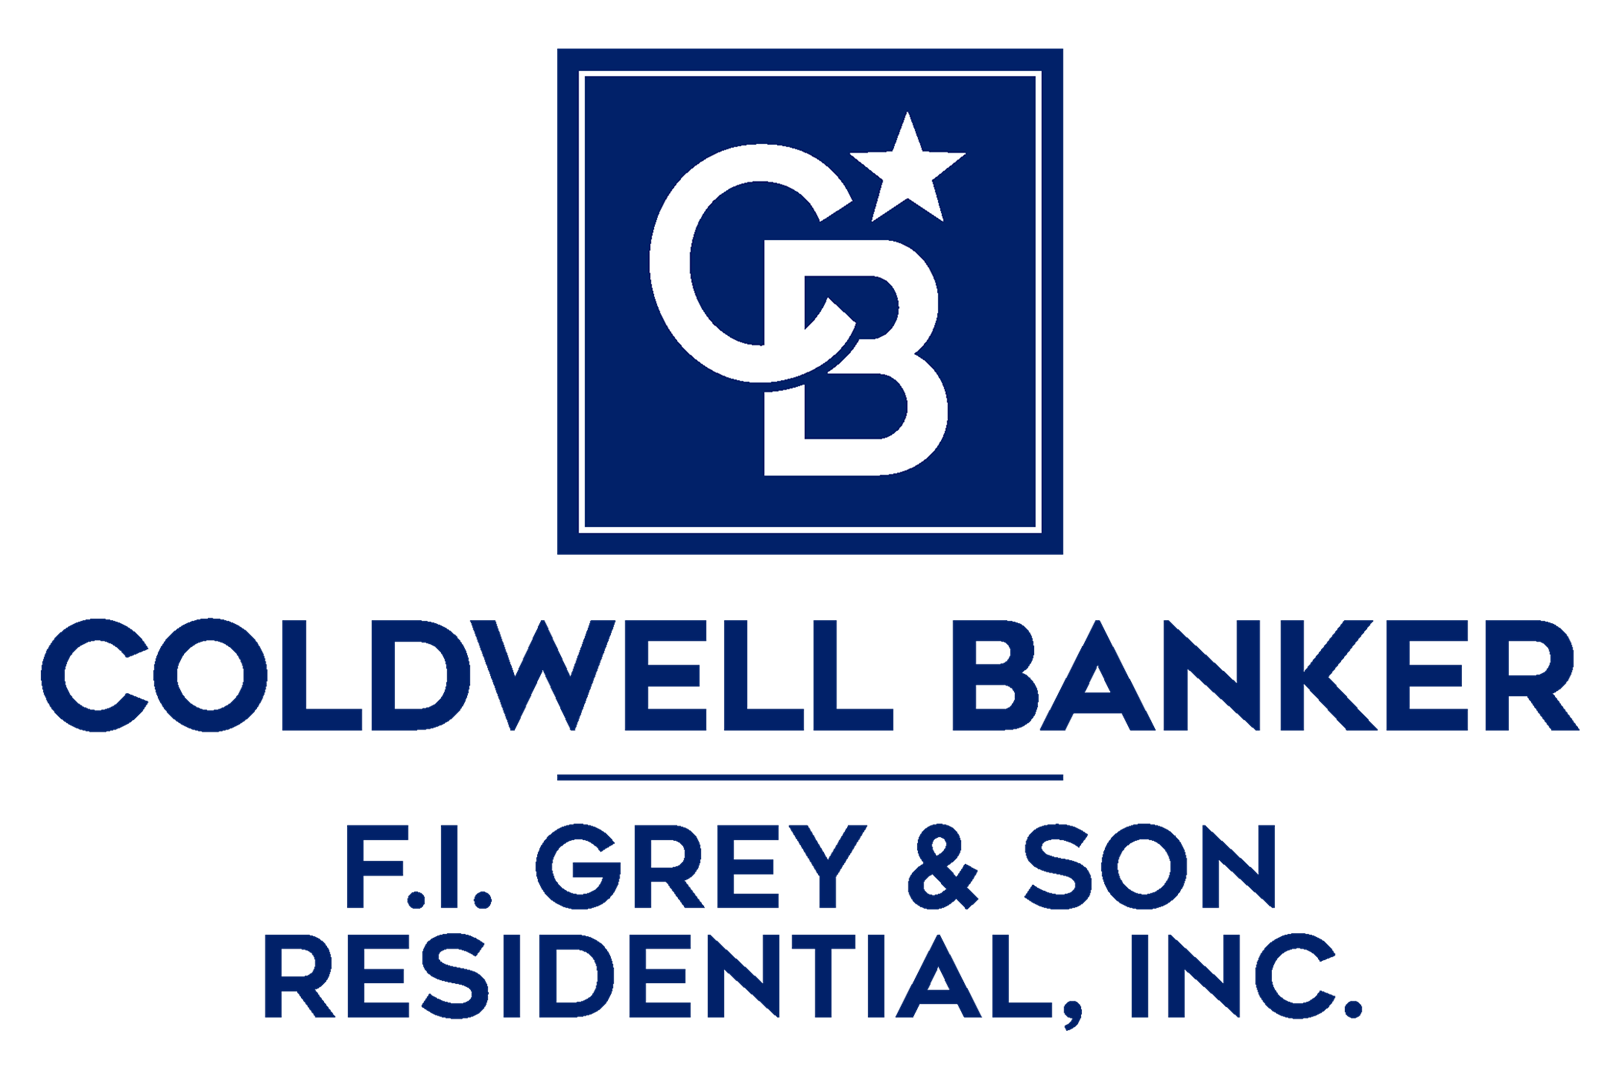 Coldwell Banker F.I. Grey & Son Residential, Inc.